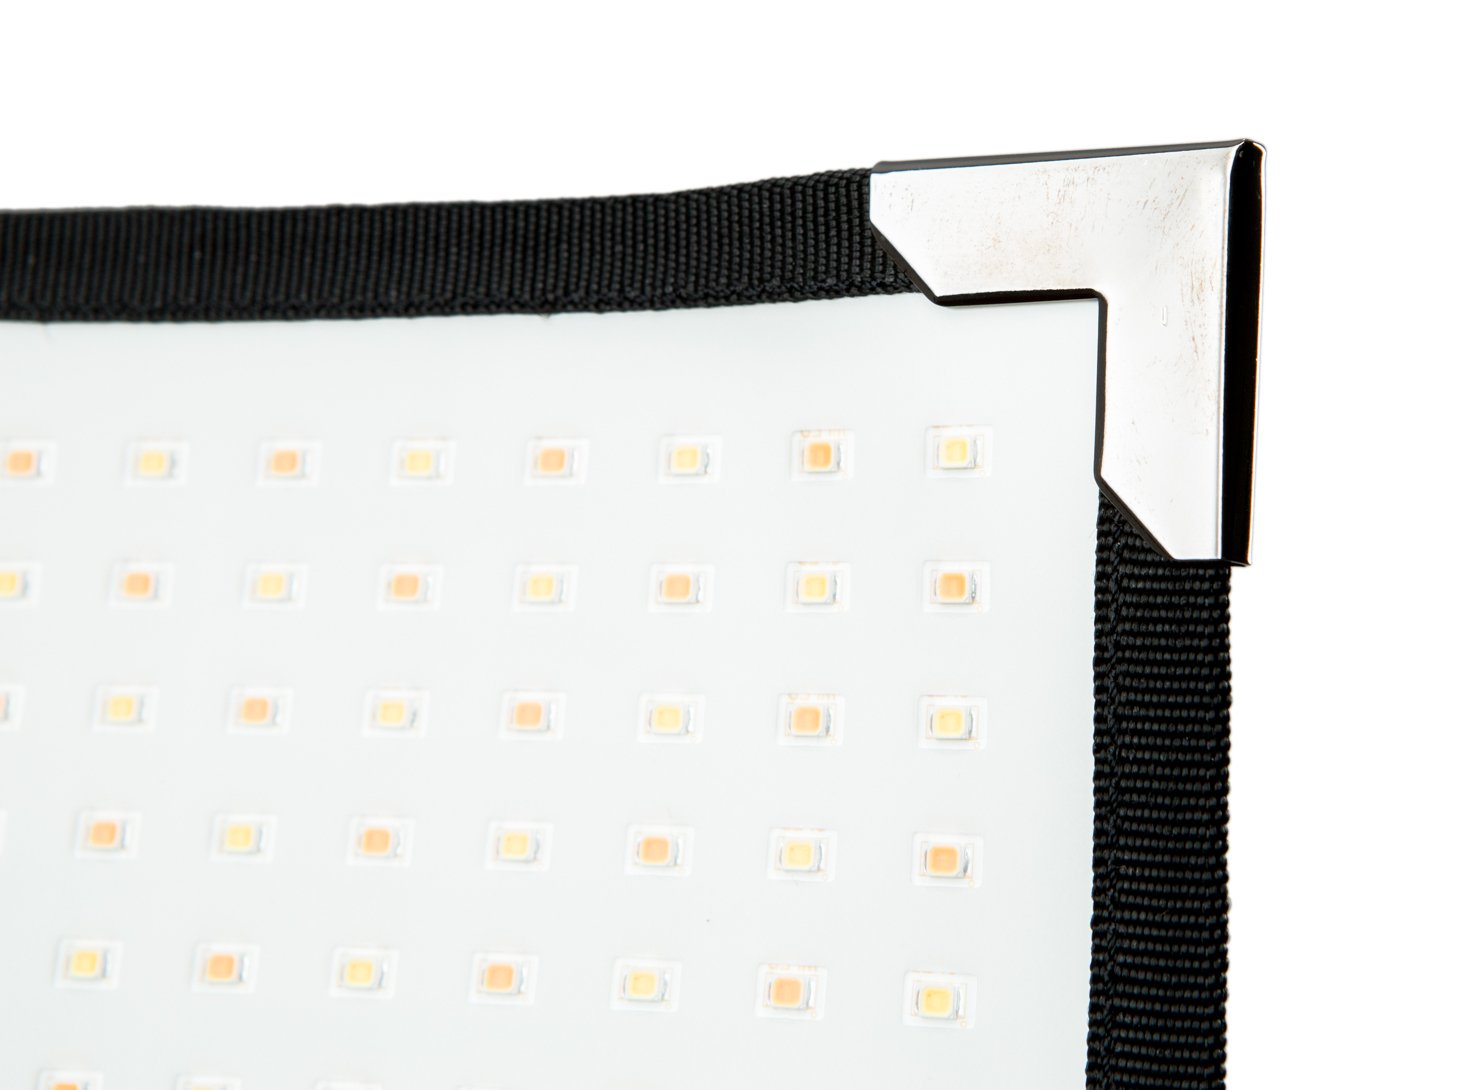 "Aladdin BI-FLEX1 Gold Mount Kit with Case 50W 12 x 12"" Flexible Bi-Color LED Panel with Gold Mount Battery Plate and Case AMS-FL50BI-KIT1-SCGM"